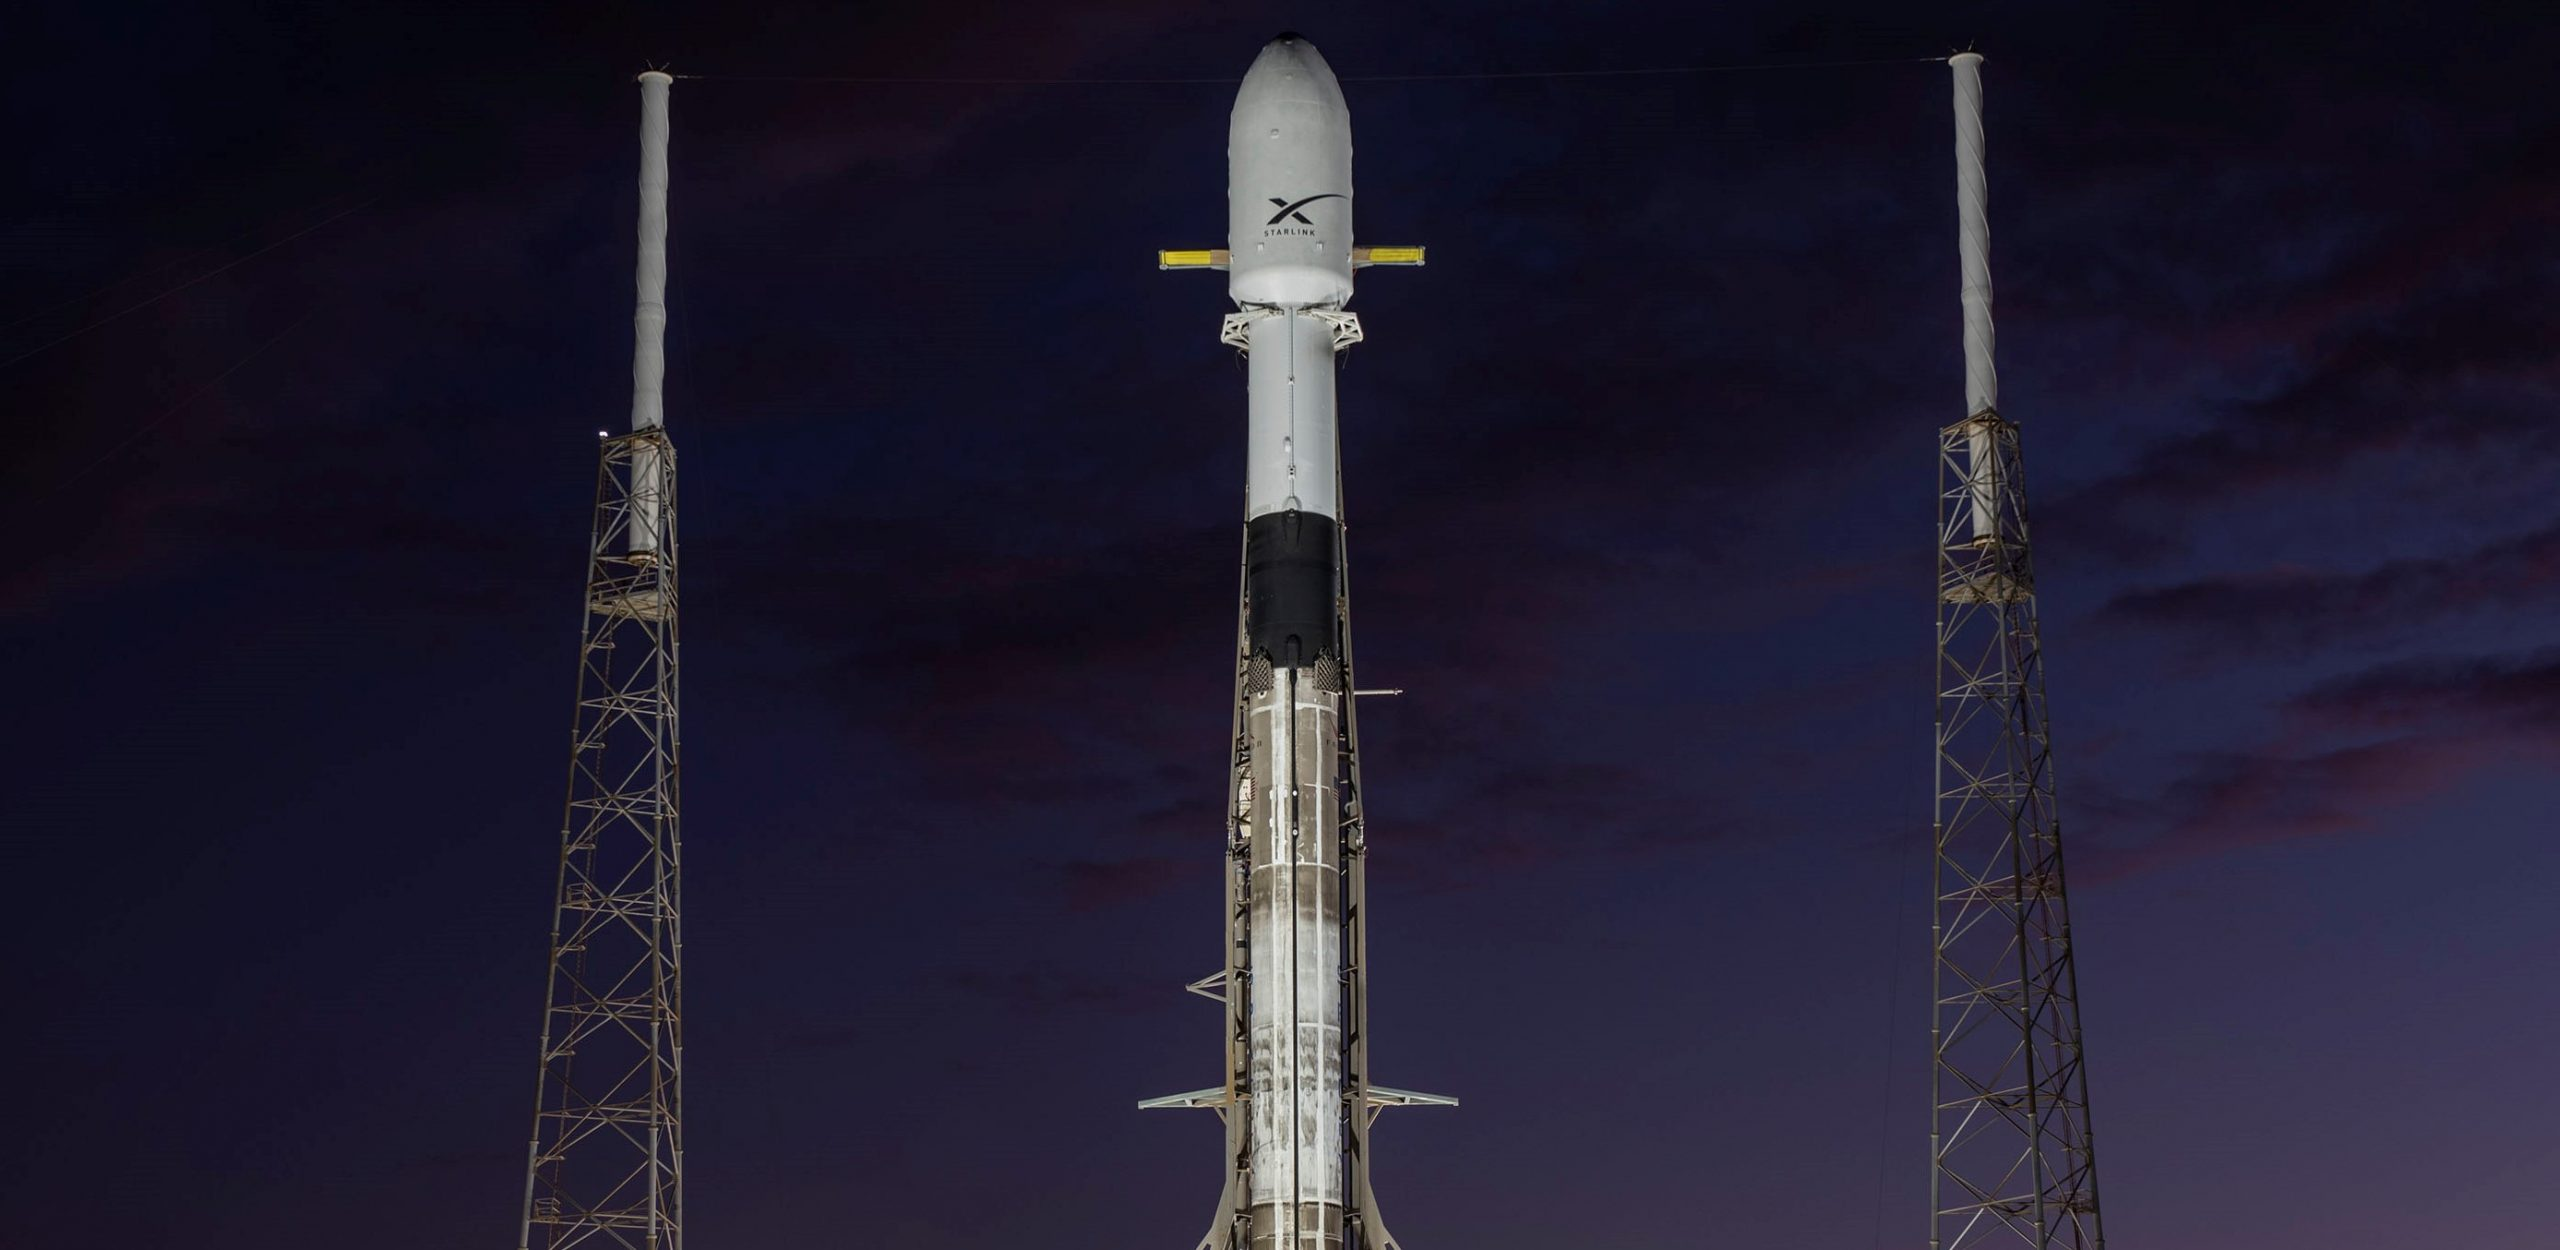 Starlink-1 Falcon 9 B1048 LC-40 vertical 111019 (SpaceX) 1 crop